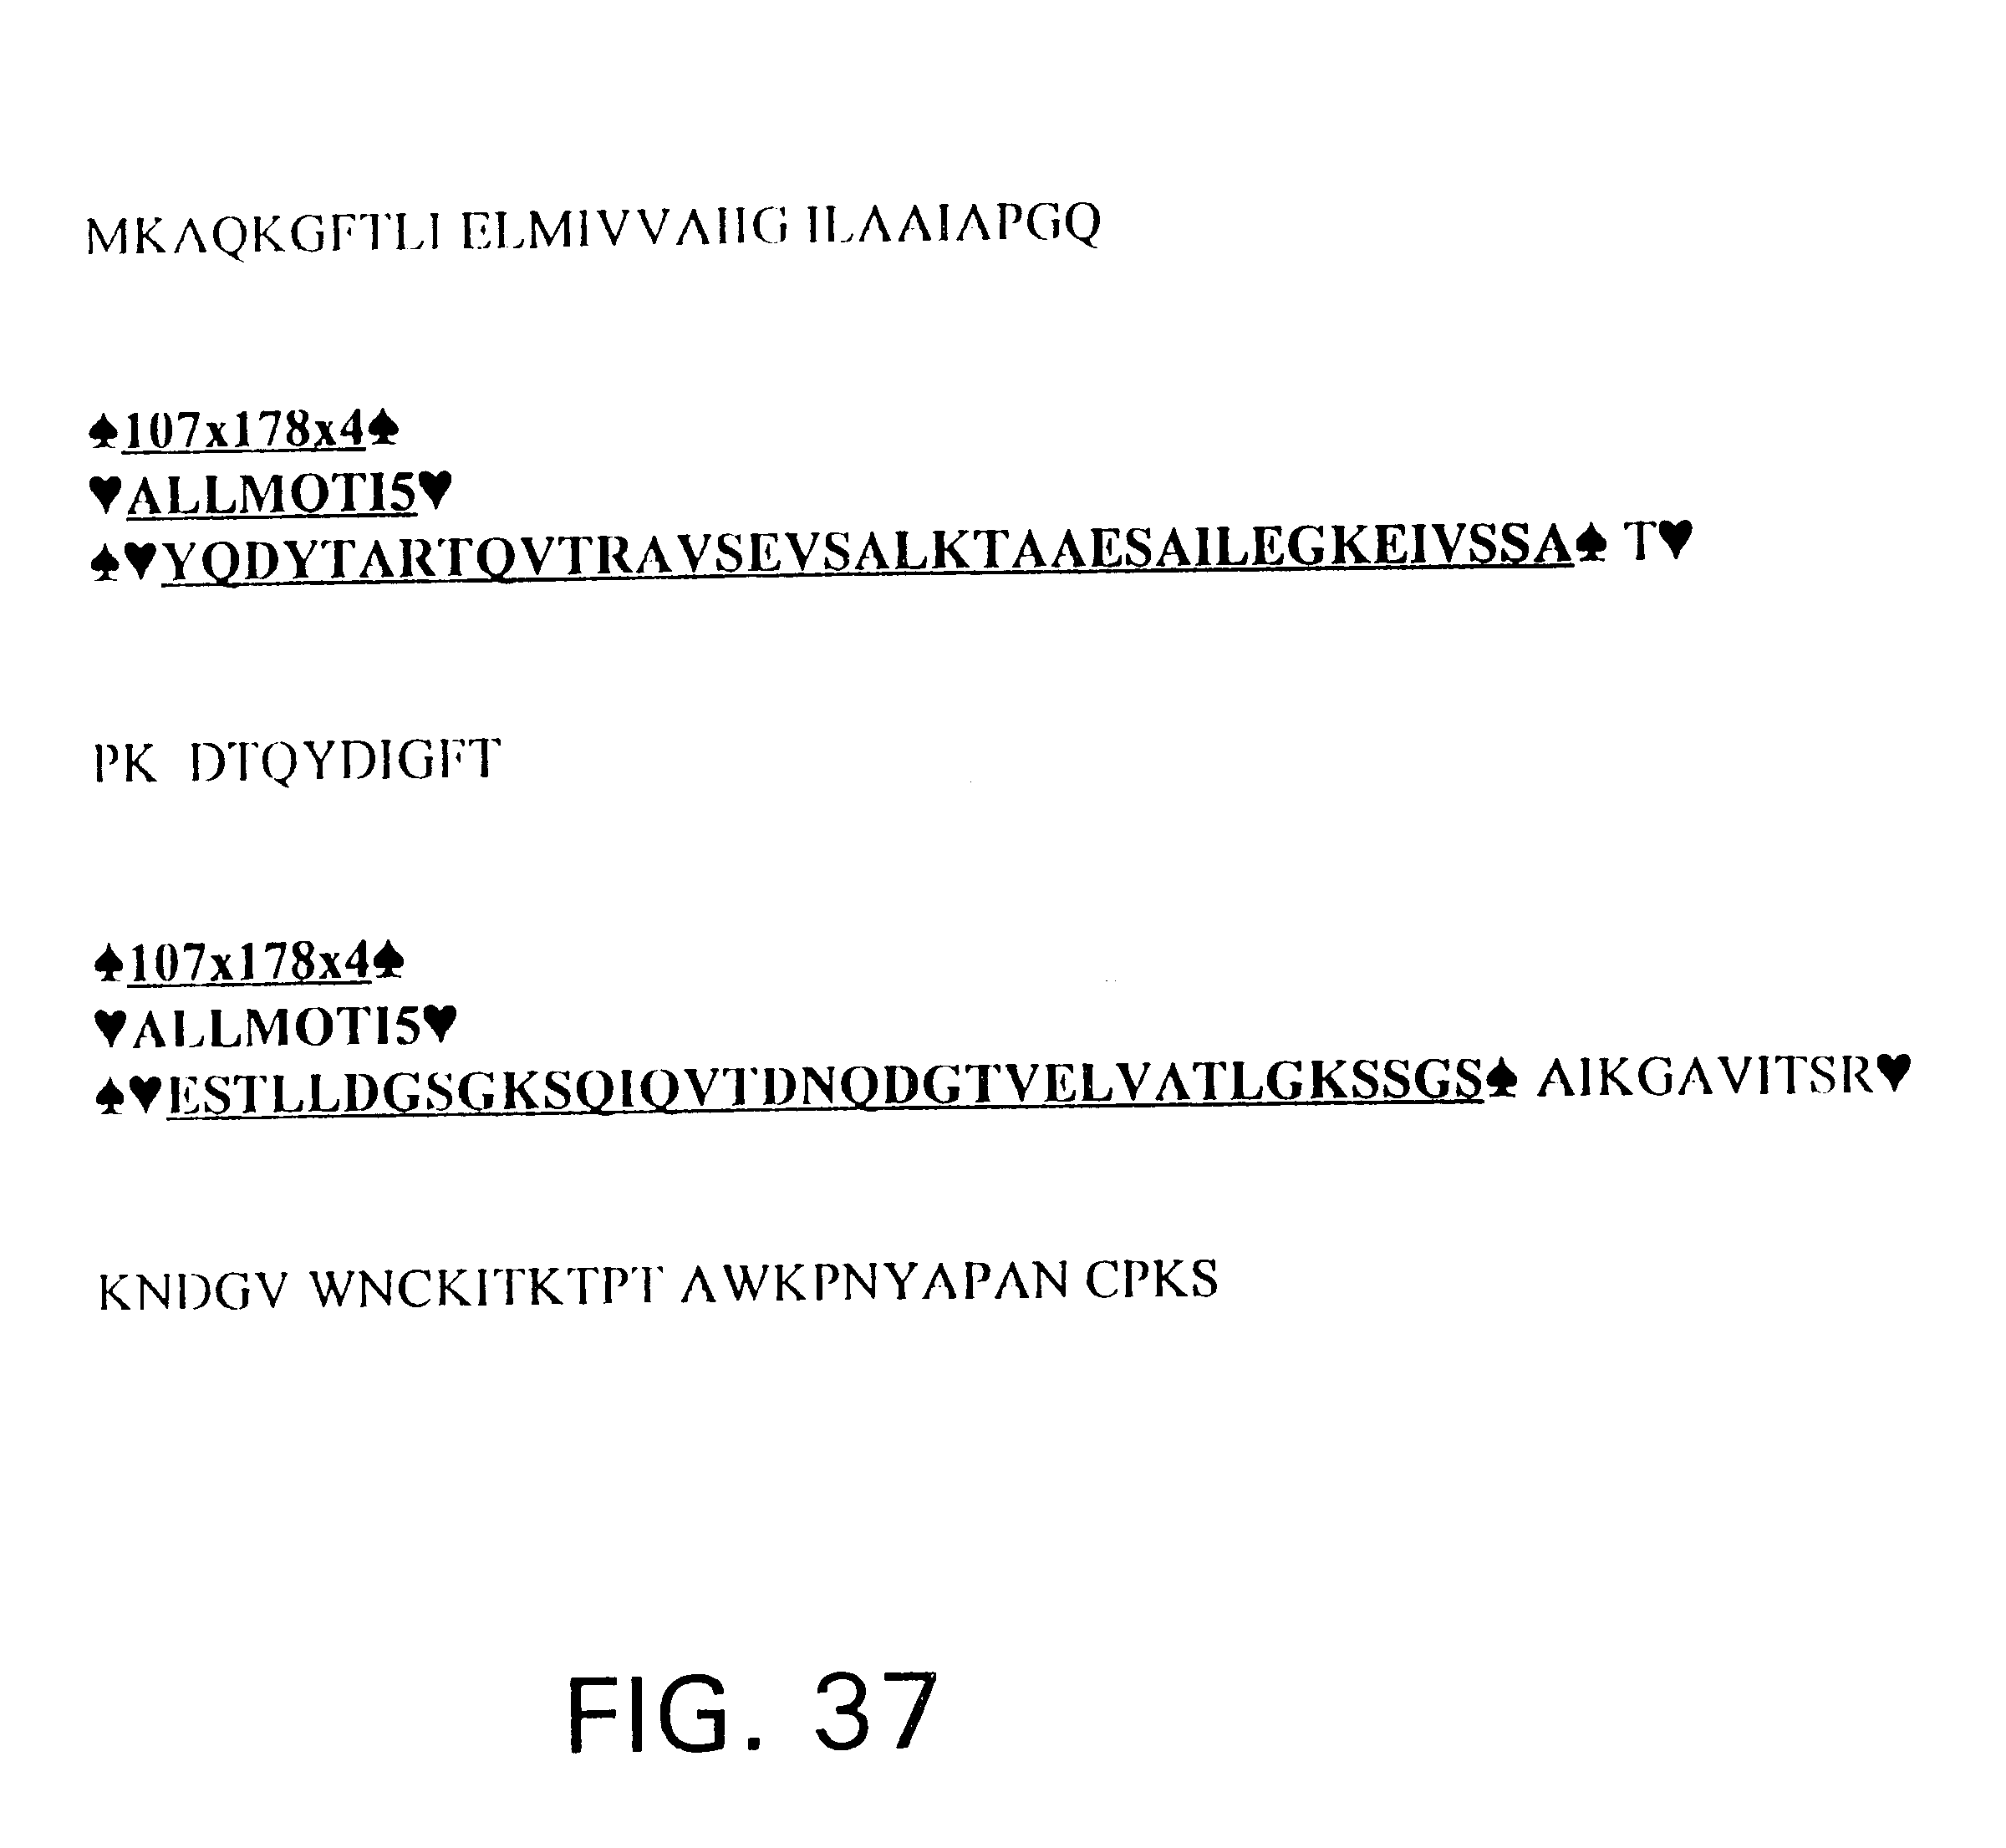 Us6228983b1 Human Respiratory Syncytial Virus Peptides With 1991 Volkswagen Fox 18 Fuse Box Diagram Antifusogenic And Antiviral Activities Google Patents